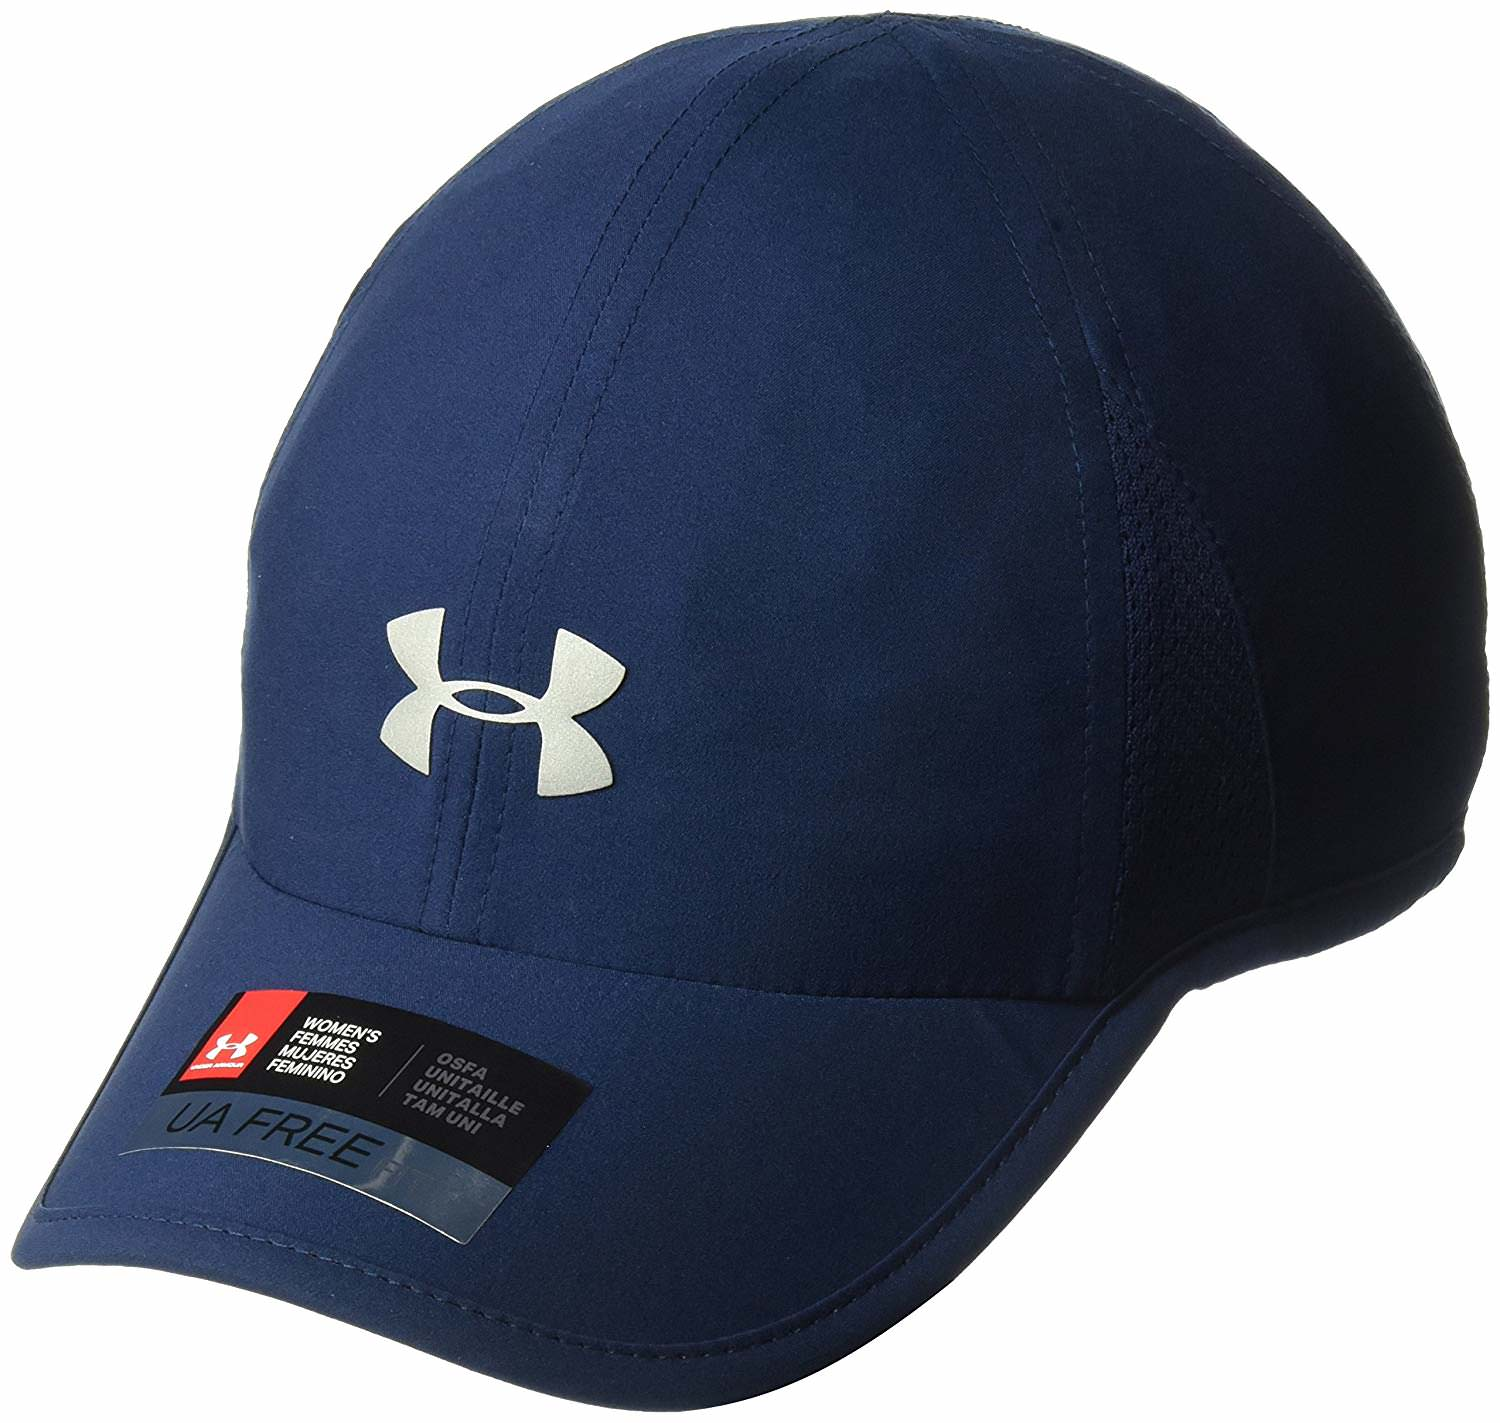 Under Armour Women's Shadow 2.0 Cap, Academy (408)/Silver, One Size